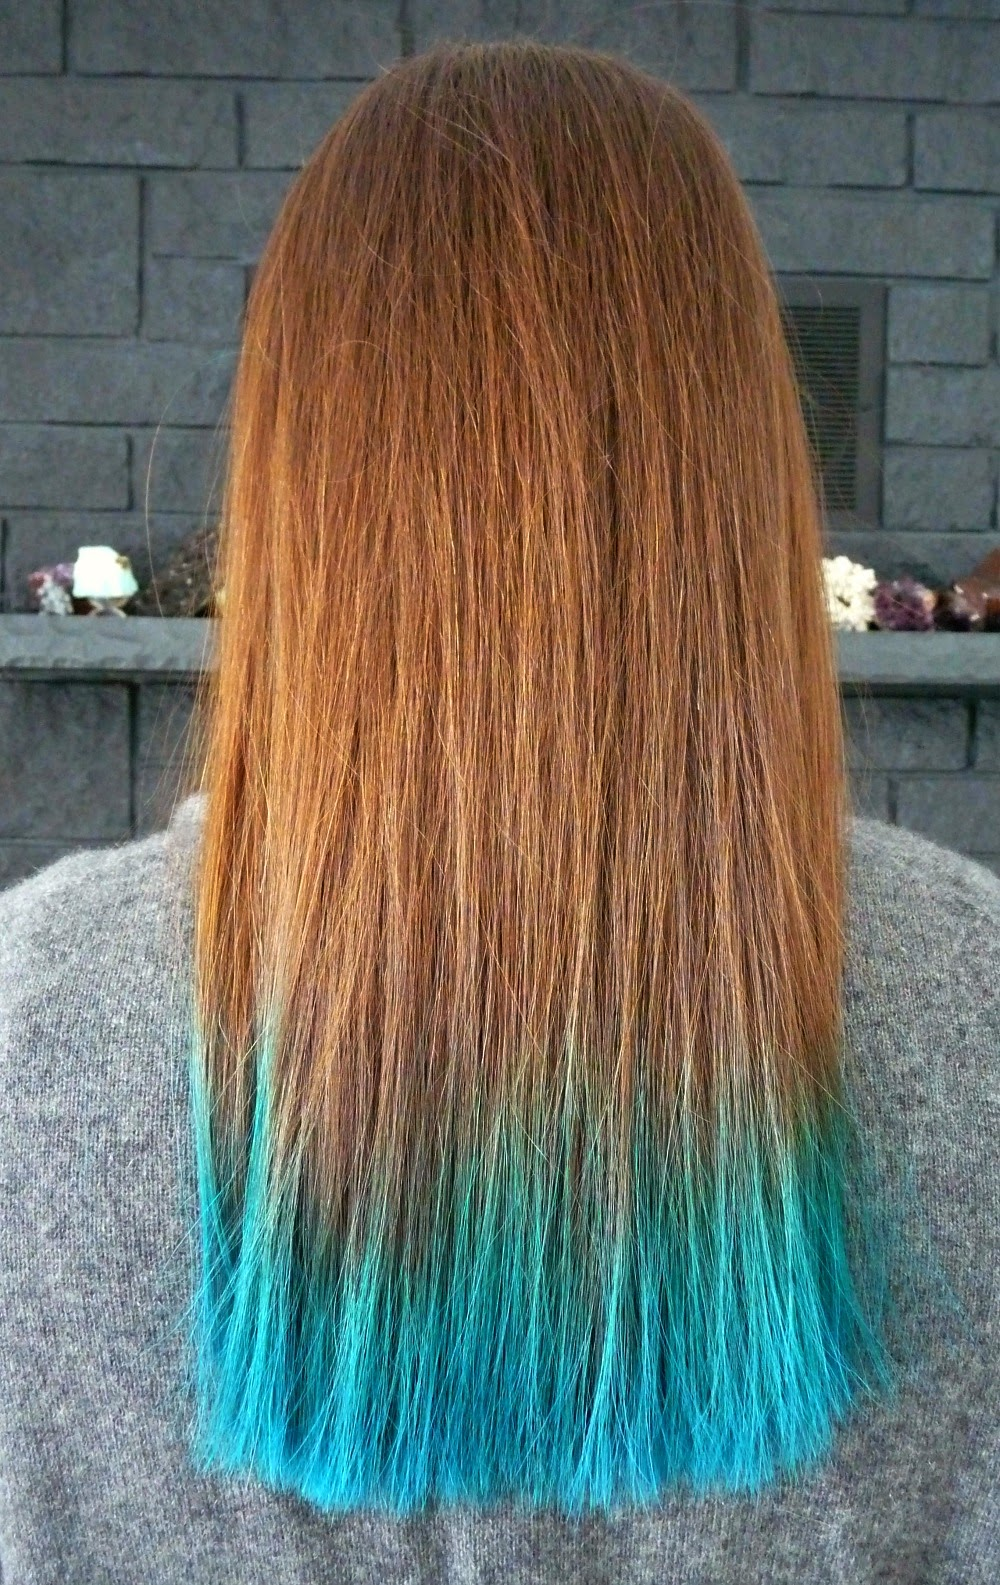 Brunette hair dip dyed aqua